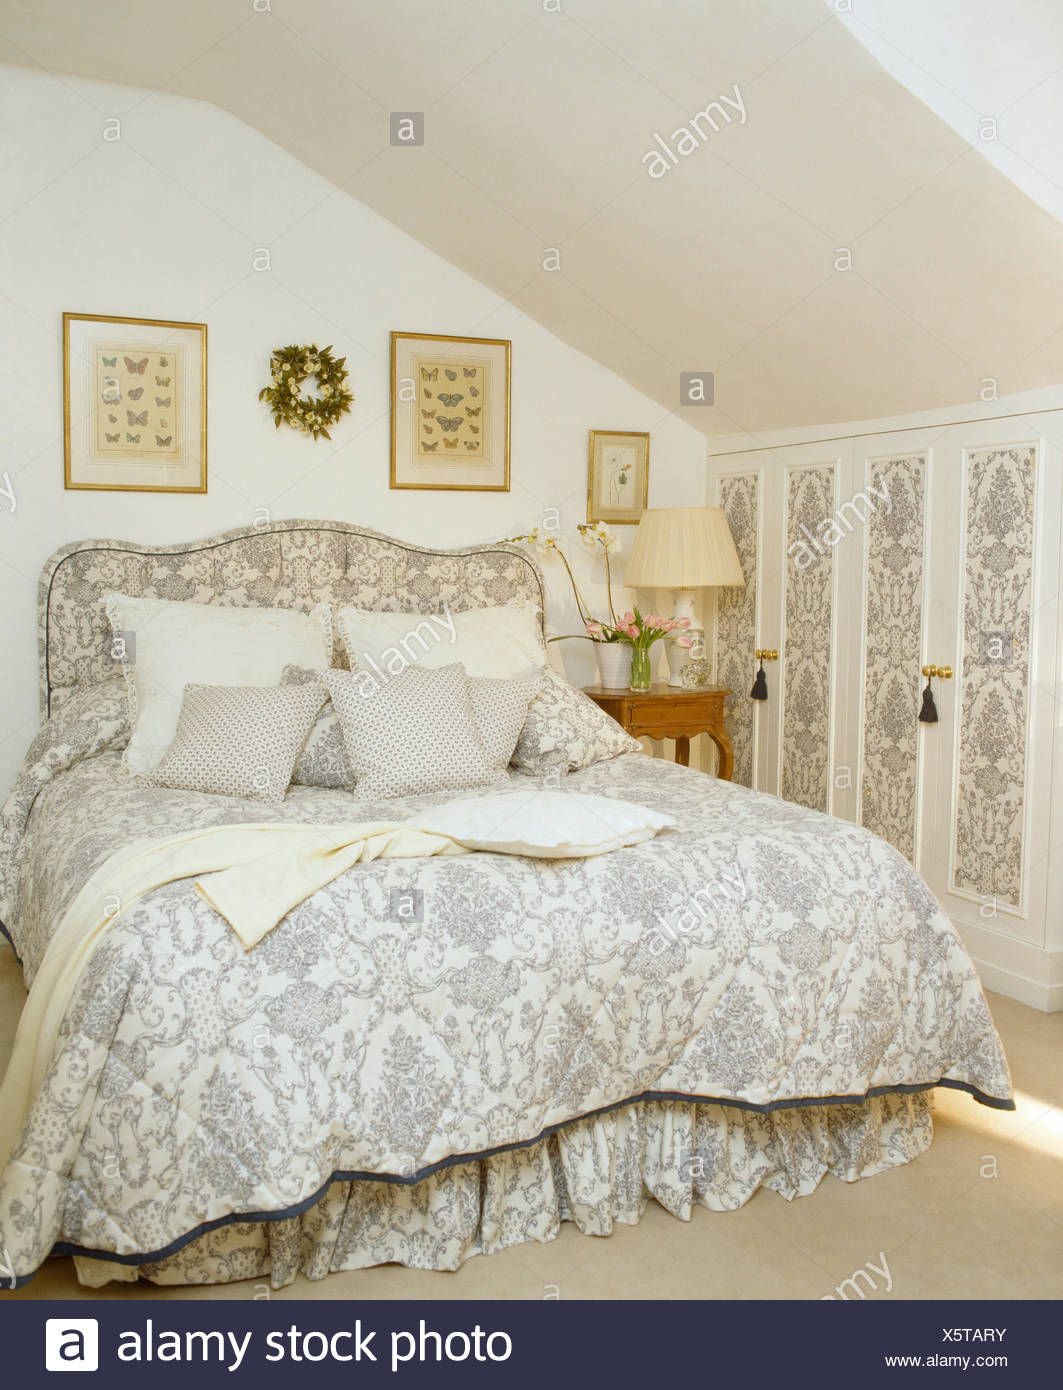 Pale Grey White Quilt And Upholstered Headboard On Bed In Attic Bedroom With Wallpaper Panels On Cupboard Door Stock Photo Alamy